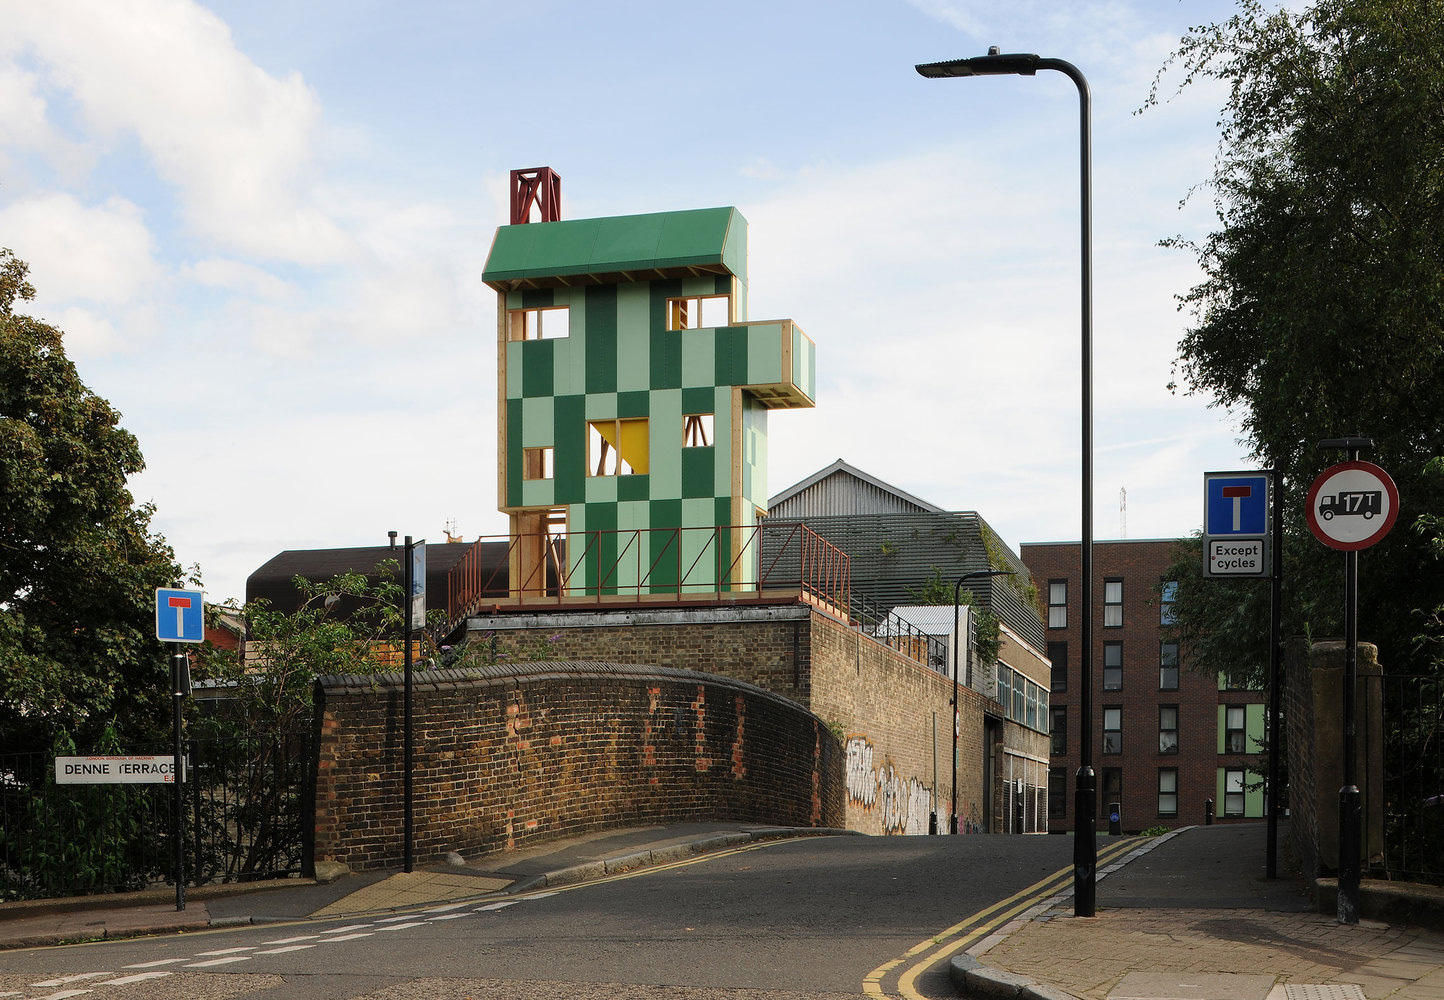 Maich Swift Architects has designed this year's annual Antepavilion in East London